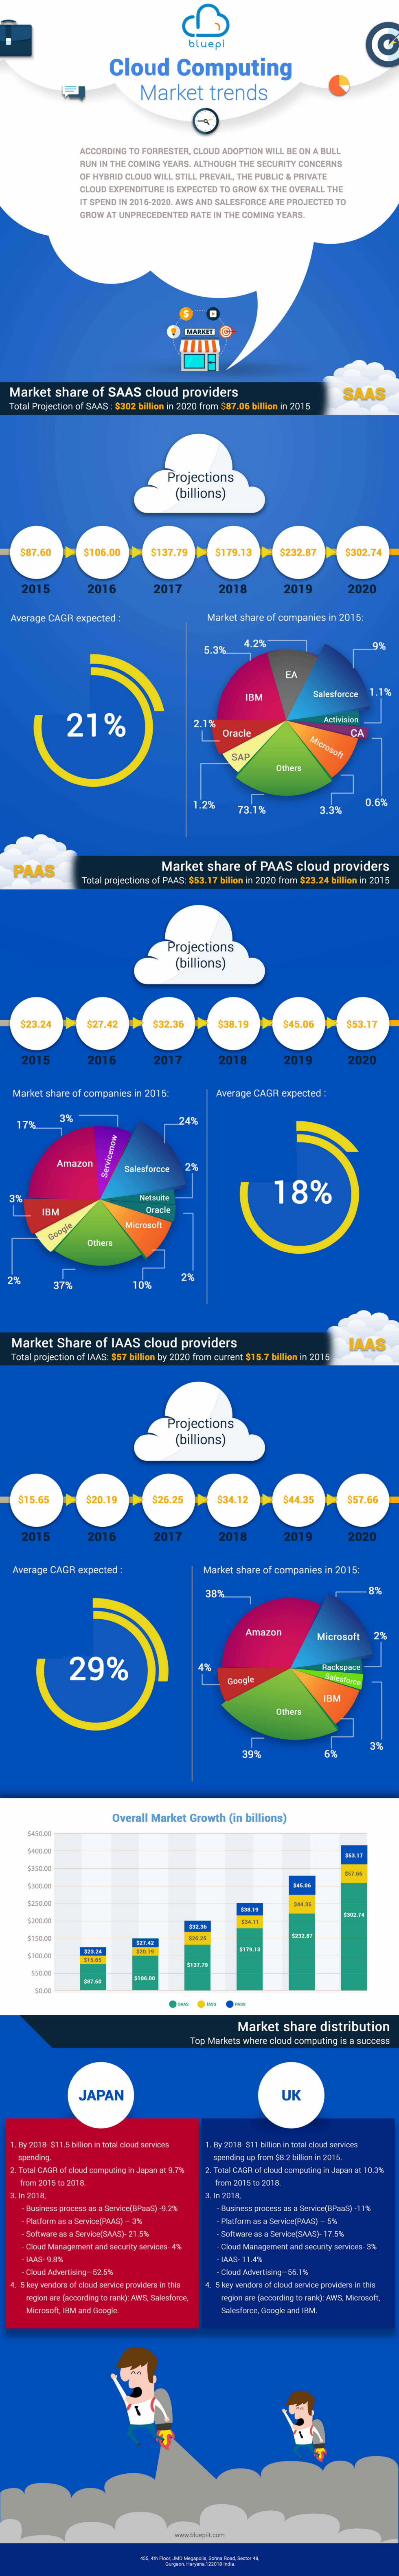 InfoGraphic-Cloud Computing Market Trends